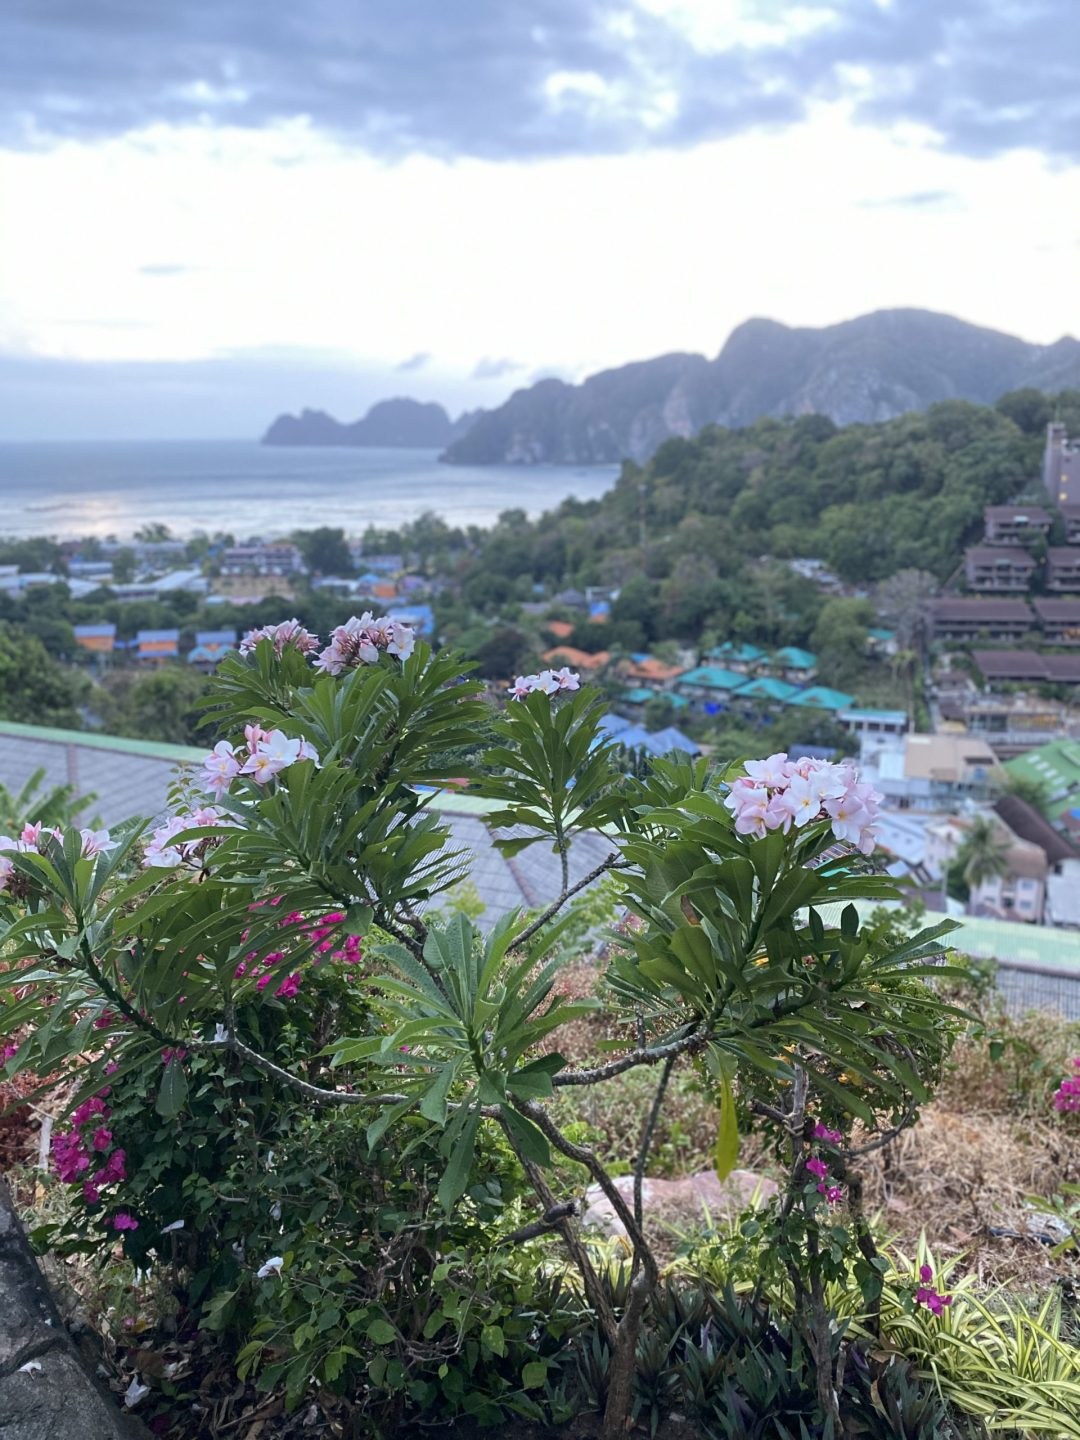 gardens of Viewpoint 1, Koh Phi Phi Don, Thailand